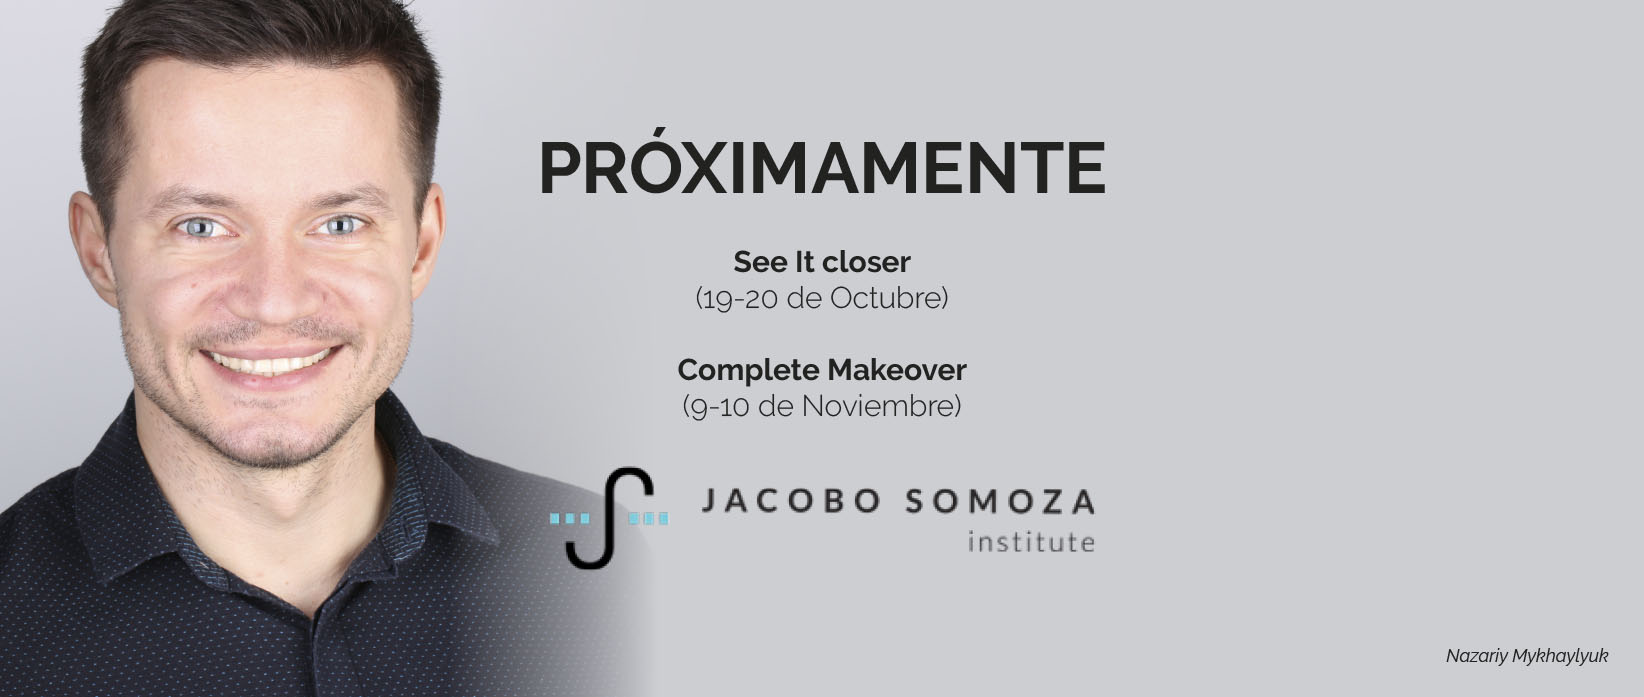 Jacobo Somoza Institute